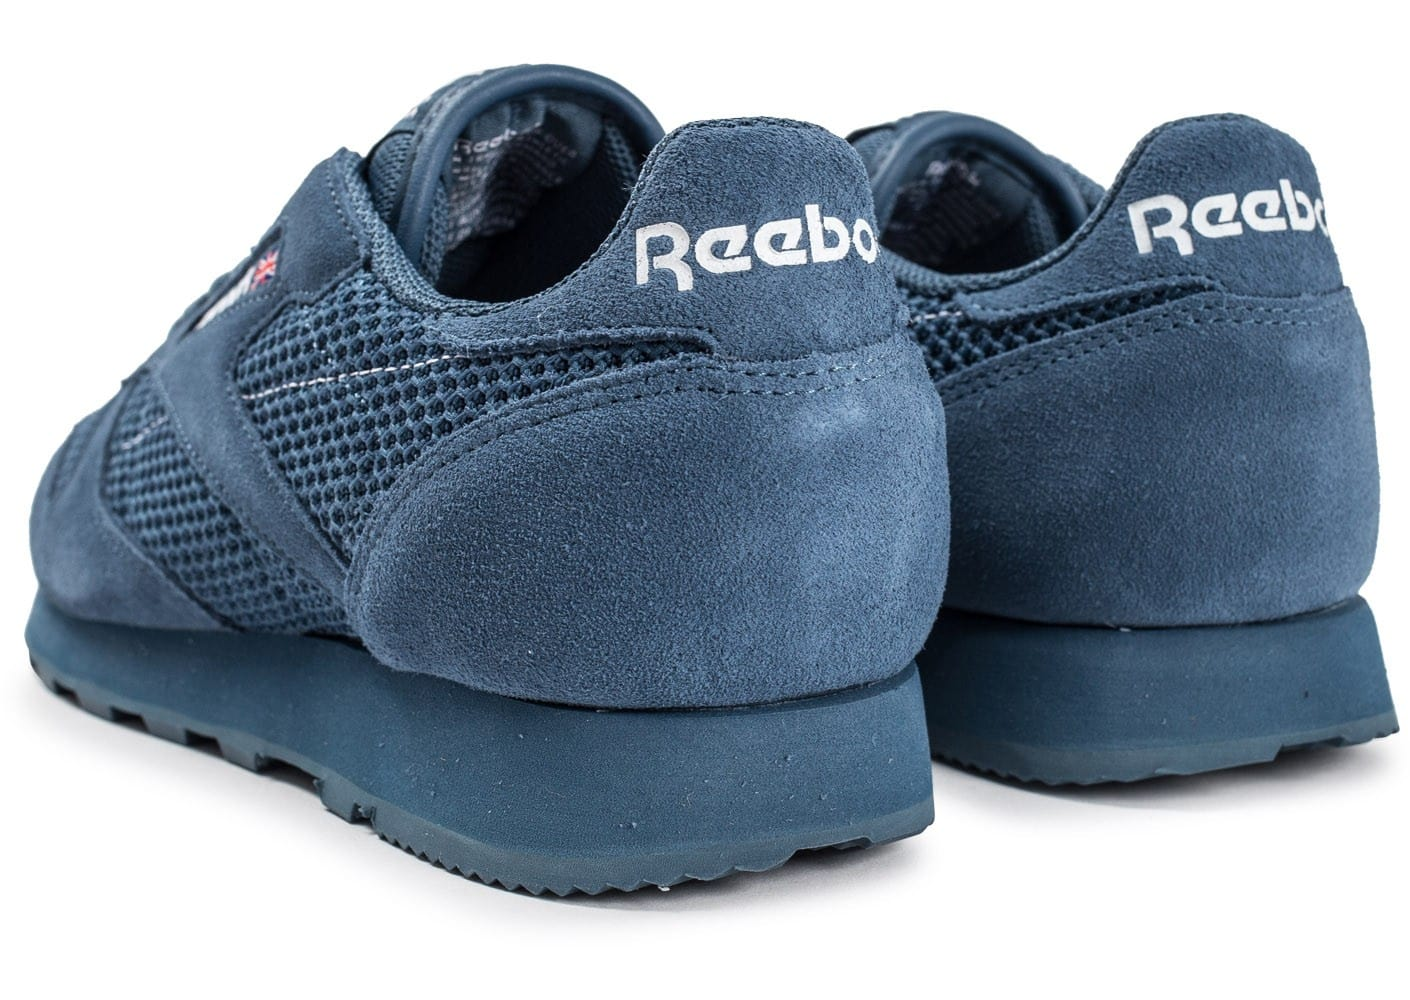 Baskets Classic Chaussures homme bleue Leather Knit Reebok Chausport hCtrdxQs